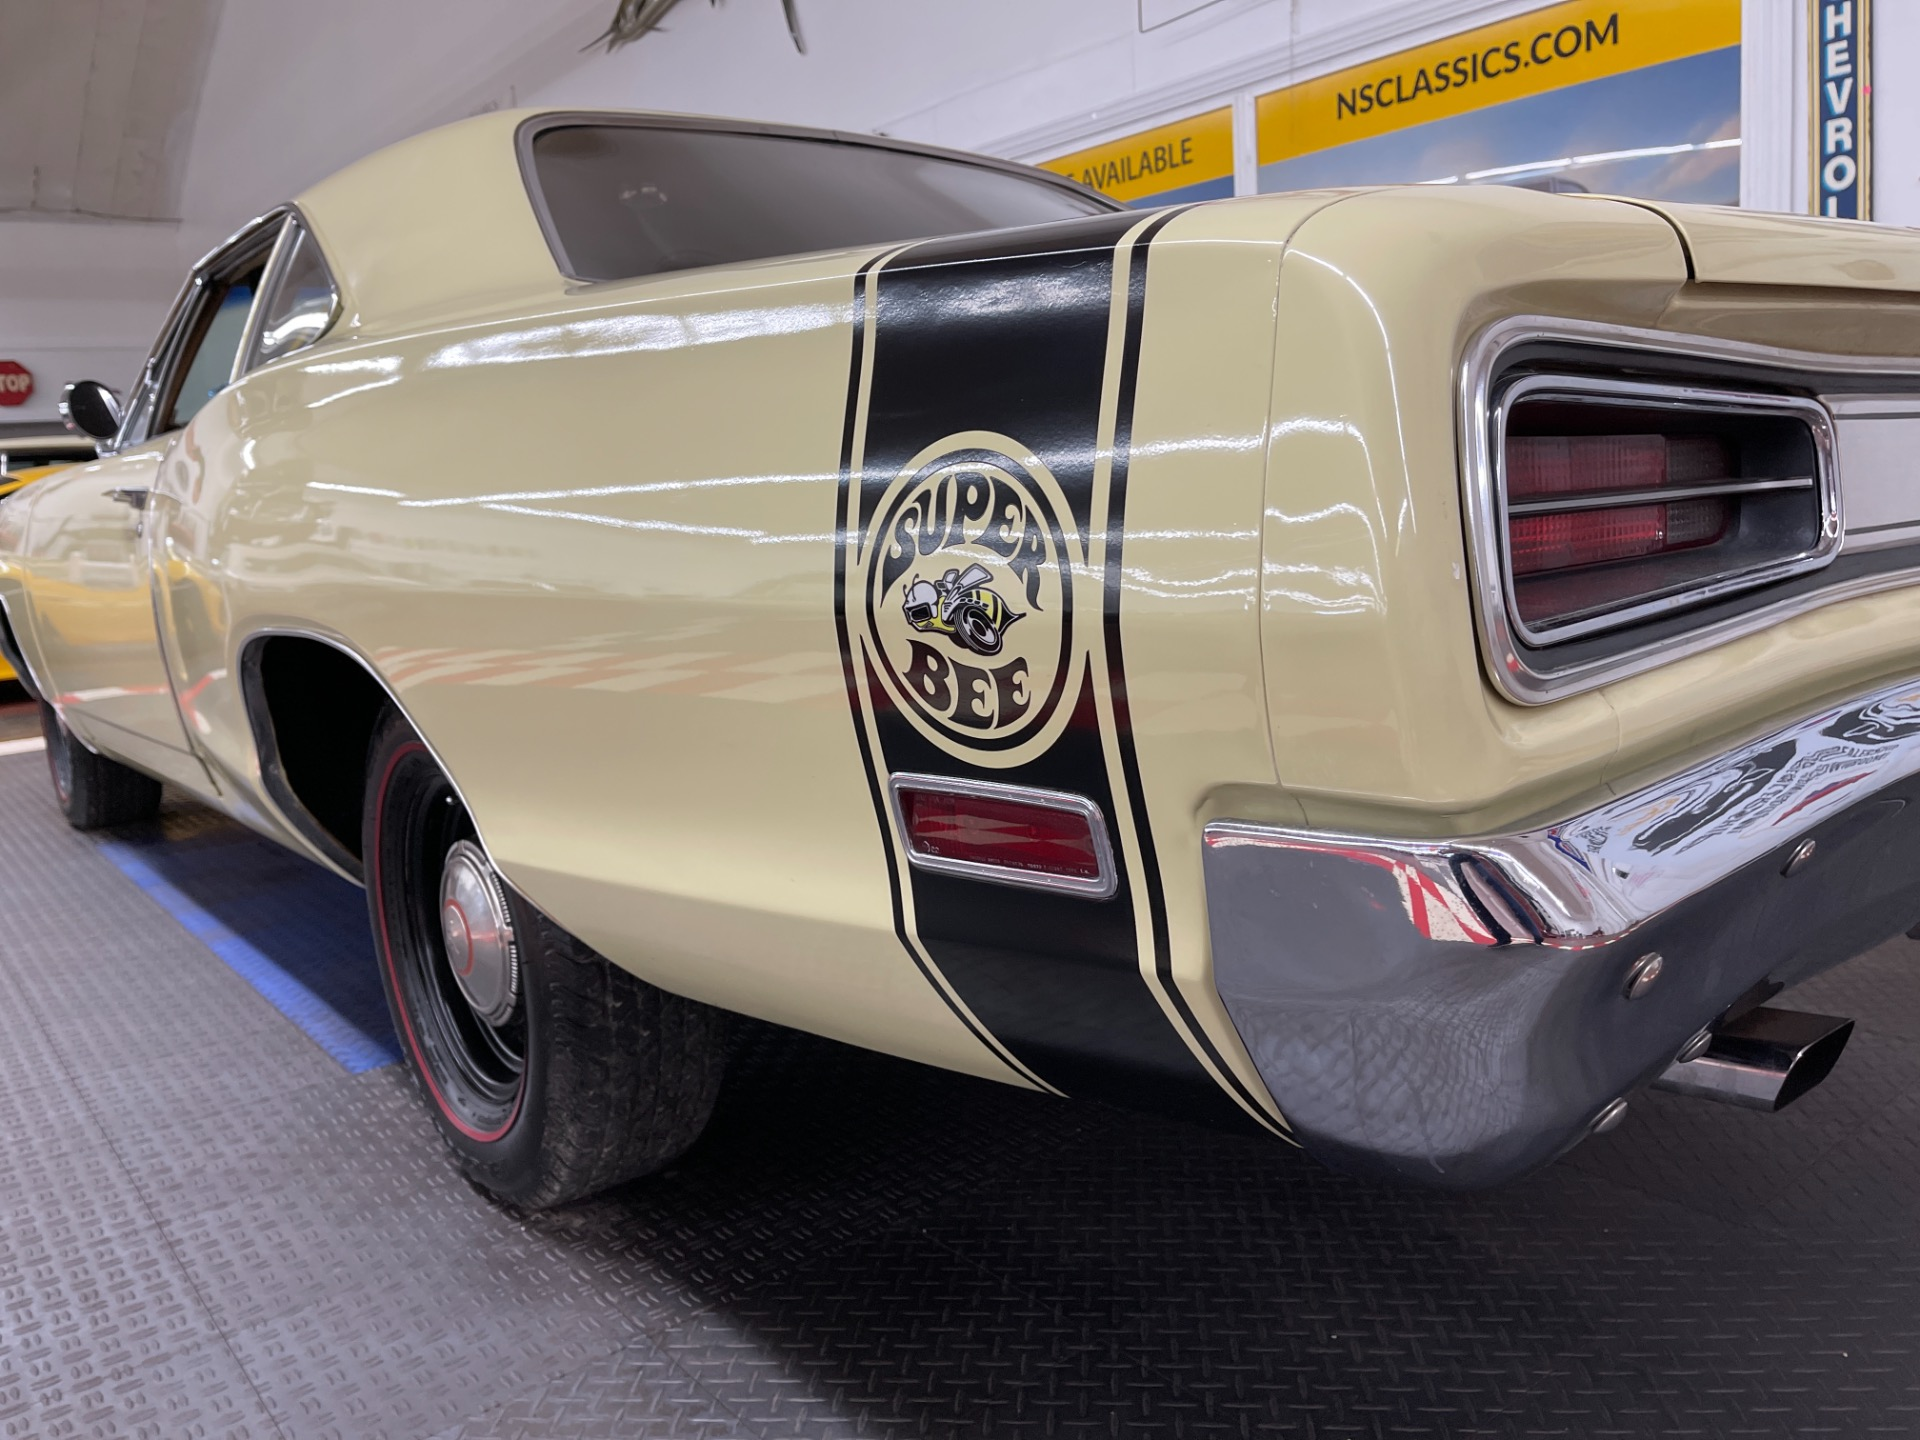 Used 1970 Dodge Coronet Super Bee Tribute 440 6 Pack - SEE VIDEO - | Mundelein, IL